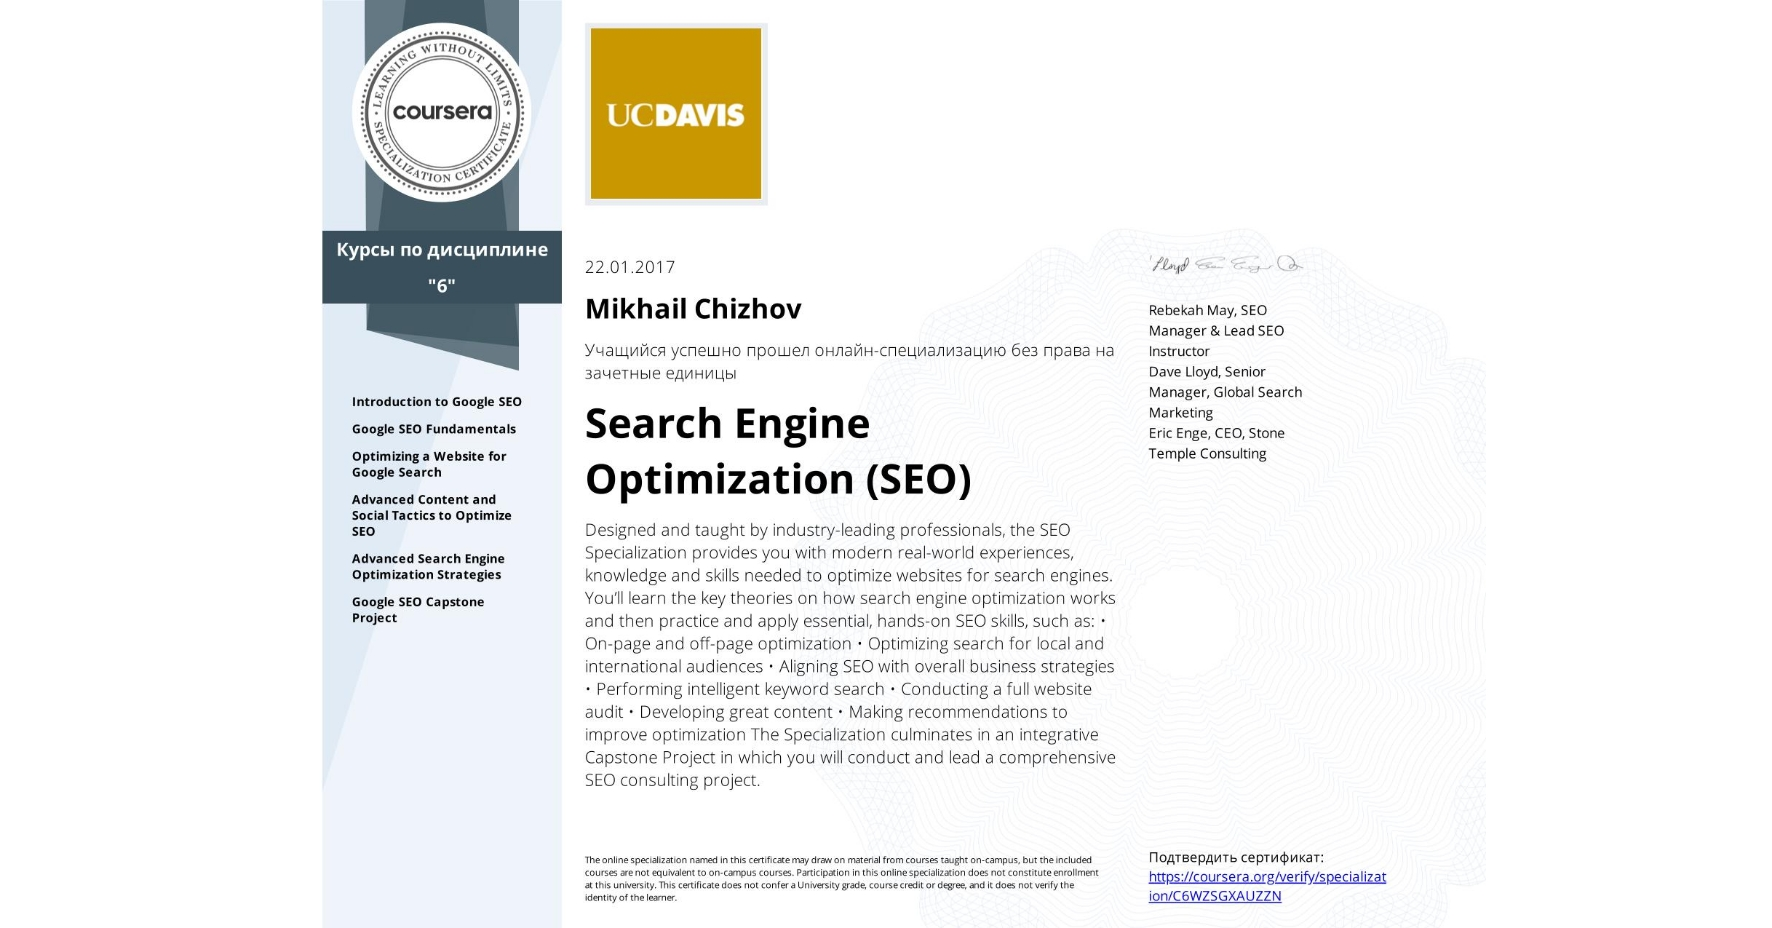 View certificate for Mikhail Chizhov, Search Engine Optimization (SEO), offered through Coursera. Designed and taught by industry-leading professionals, the SEO Specialization provides you with modern real-world experiences, knowledge and skills needed to optimize websites for search engines.  You'll learn the key theories on how search engine optimization works and then practice and apply essential, hands-on SEO skills, such as:  • On-page and off-page optimization • Optimizing search for local and international audiences • Aligning SEO with overall business strategies • Performing intelligent keyword search • Conducting a full website audit • Developing great content • Making recommendations to improve optimization  The Specialization culminates in an integrative Capstone Project in which you will conduct and lead a comprehensive SEO consulting project.